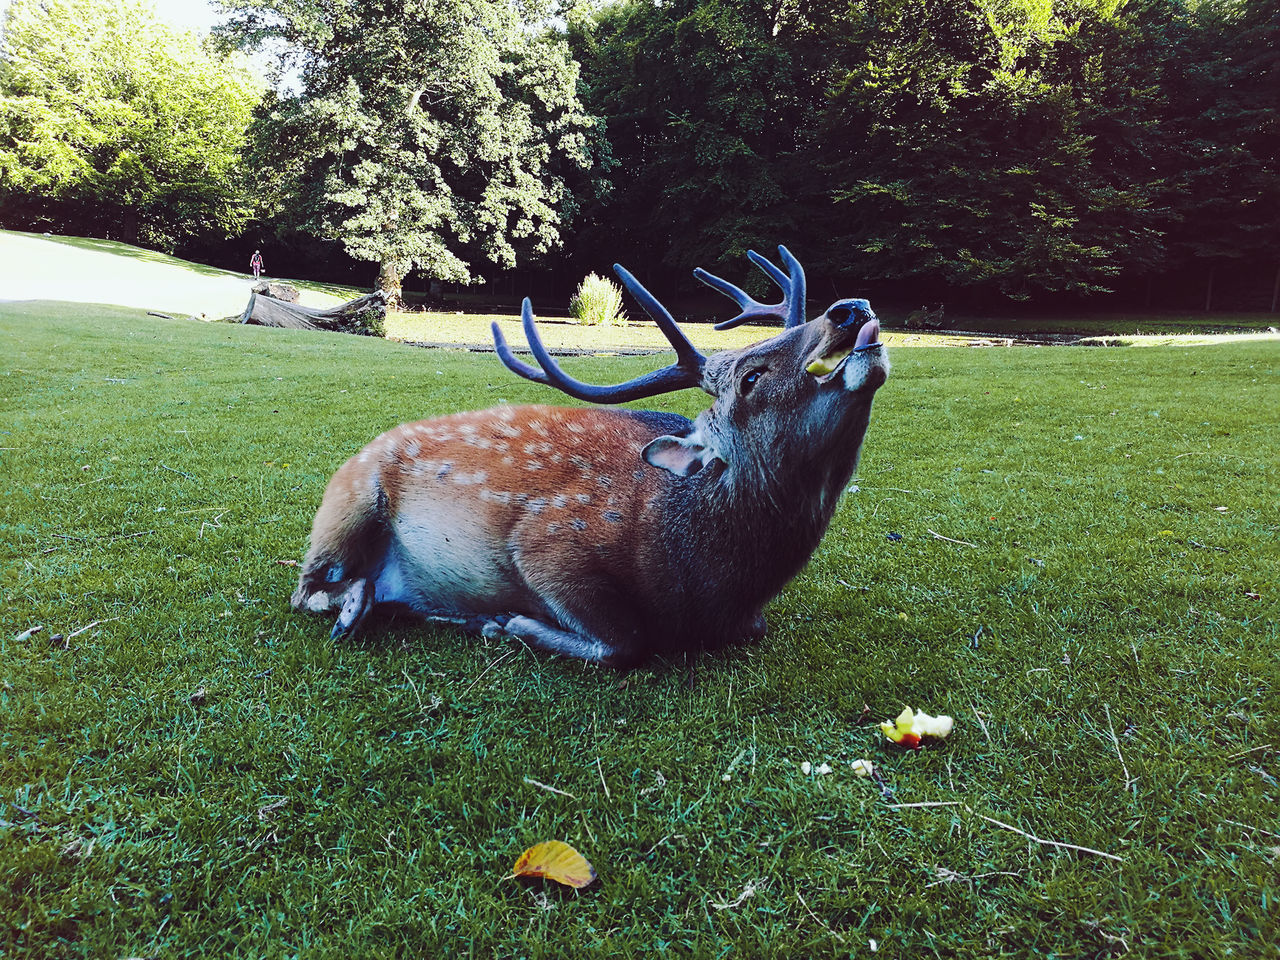 One Animal Animal Themes Grass Animal Tree No People Animals In The Wild Outdoors Nature Mammal Day Antler Travel Adventure Domestic Animals Landscape Stag Roe Deer Wildlife Wild Animal Wild Animal Park Wild Wildlife Photography Wildlife & Nature Deer